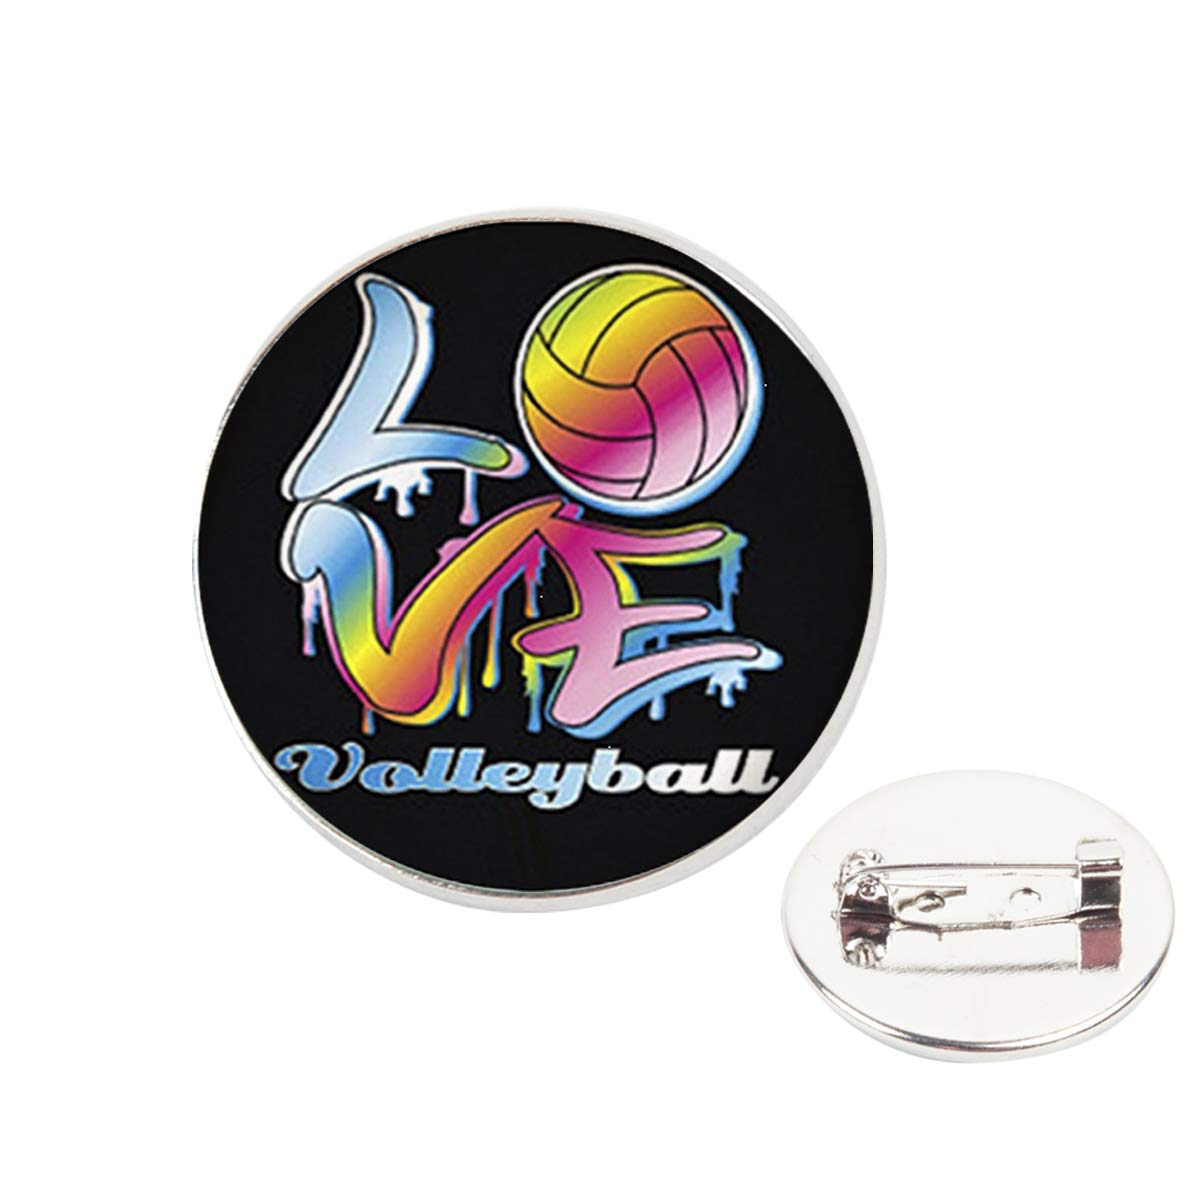 Pinback Buttons Badges Pins I Love Volleyball Lapel Pin Brooch Clip Trendy Accessory Jacket T-Shirt Bag Hat Shoe